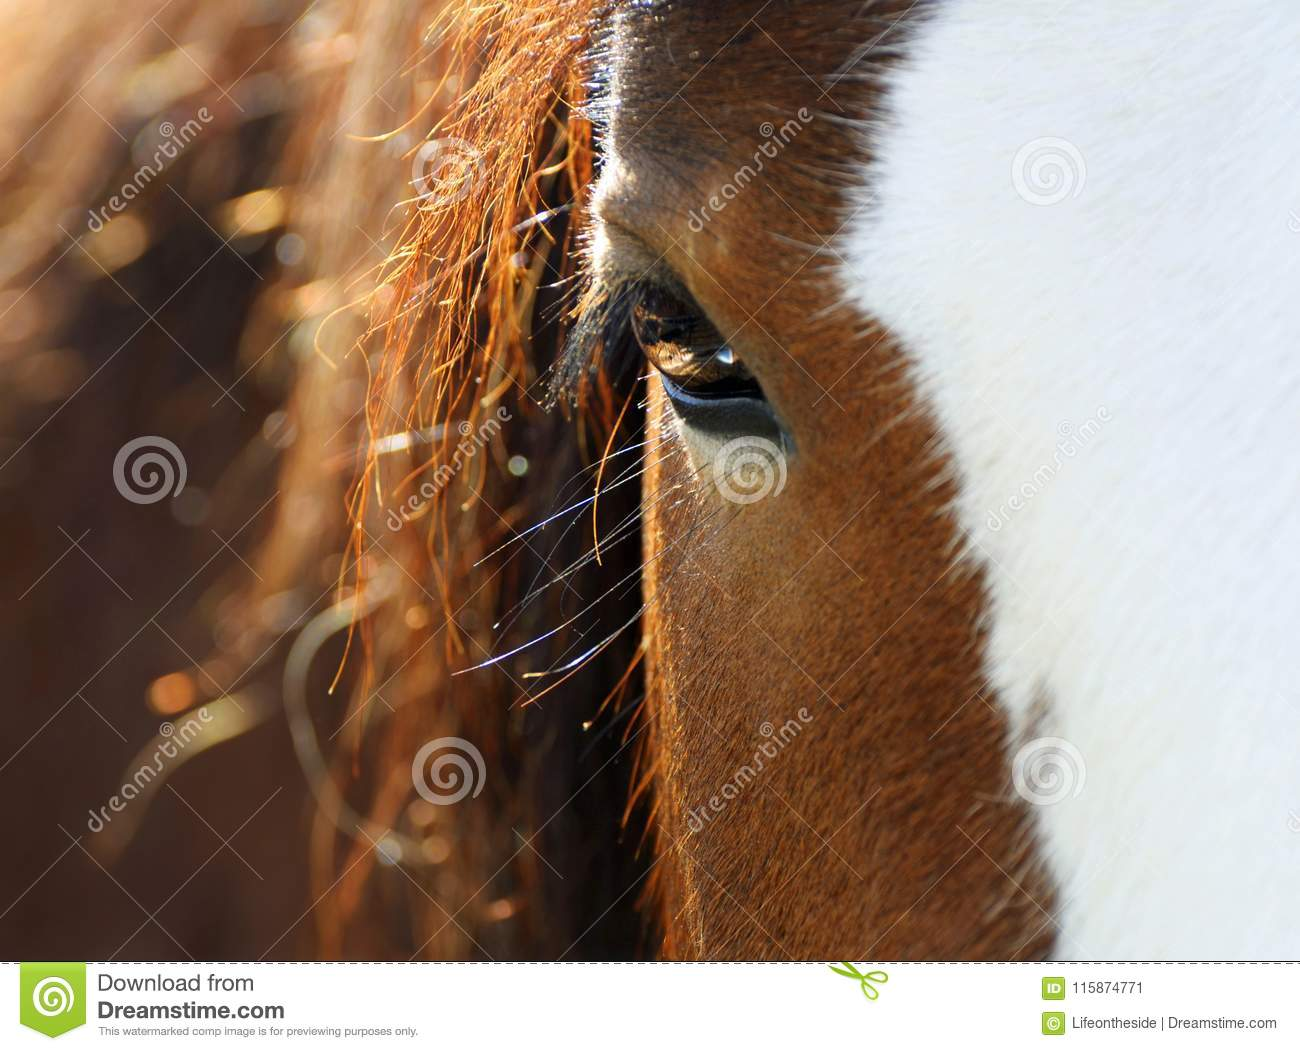 Closeup gentle soft eyes and mane of chestnut horse pet in sunset